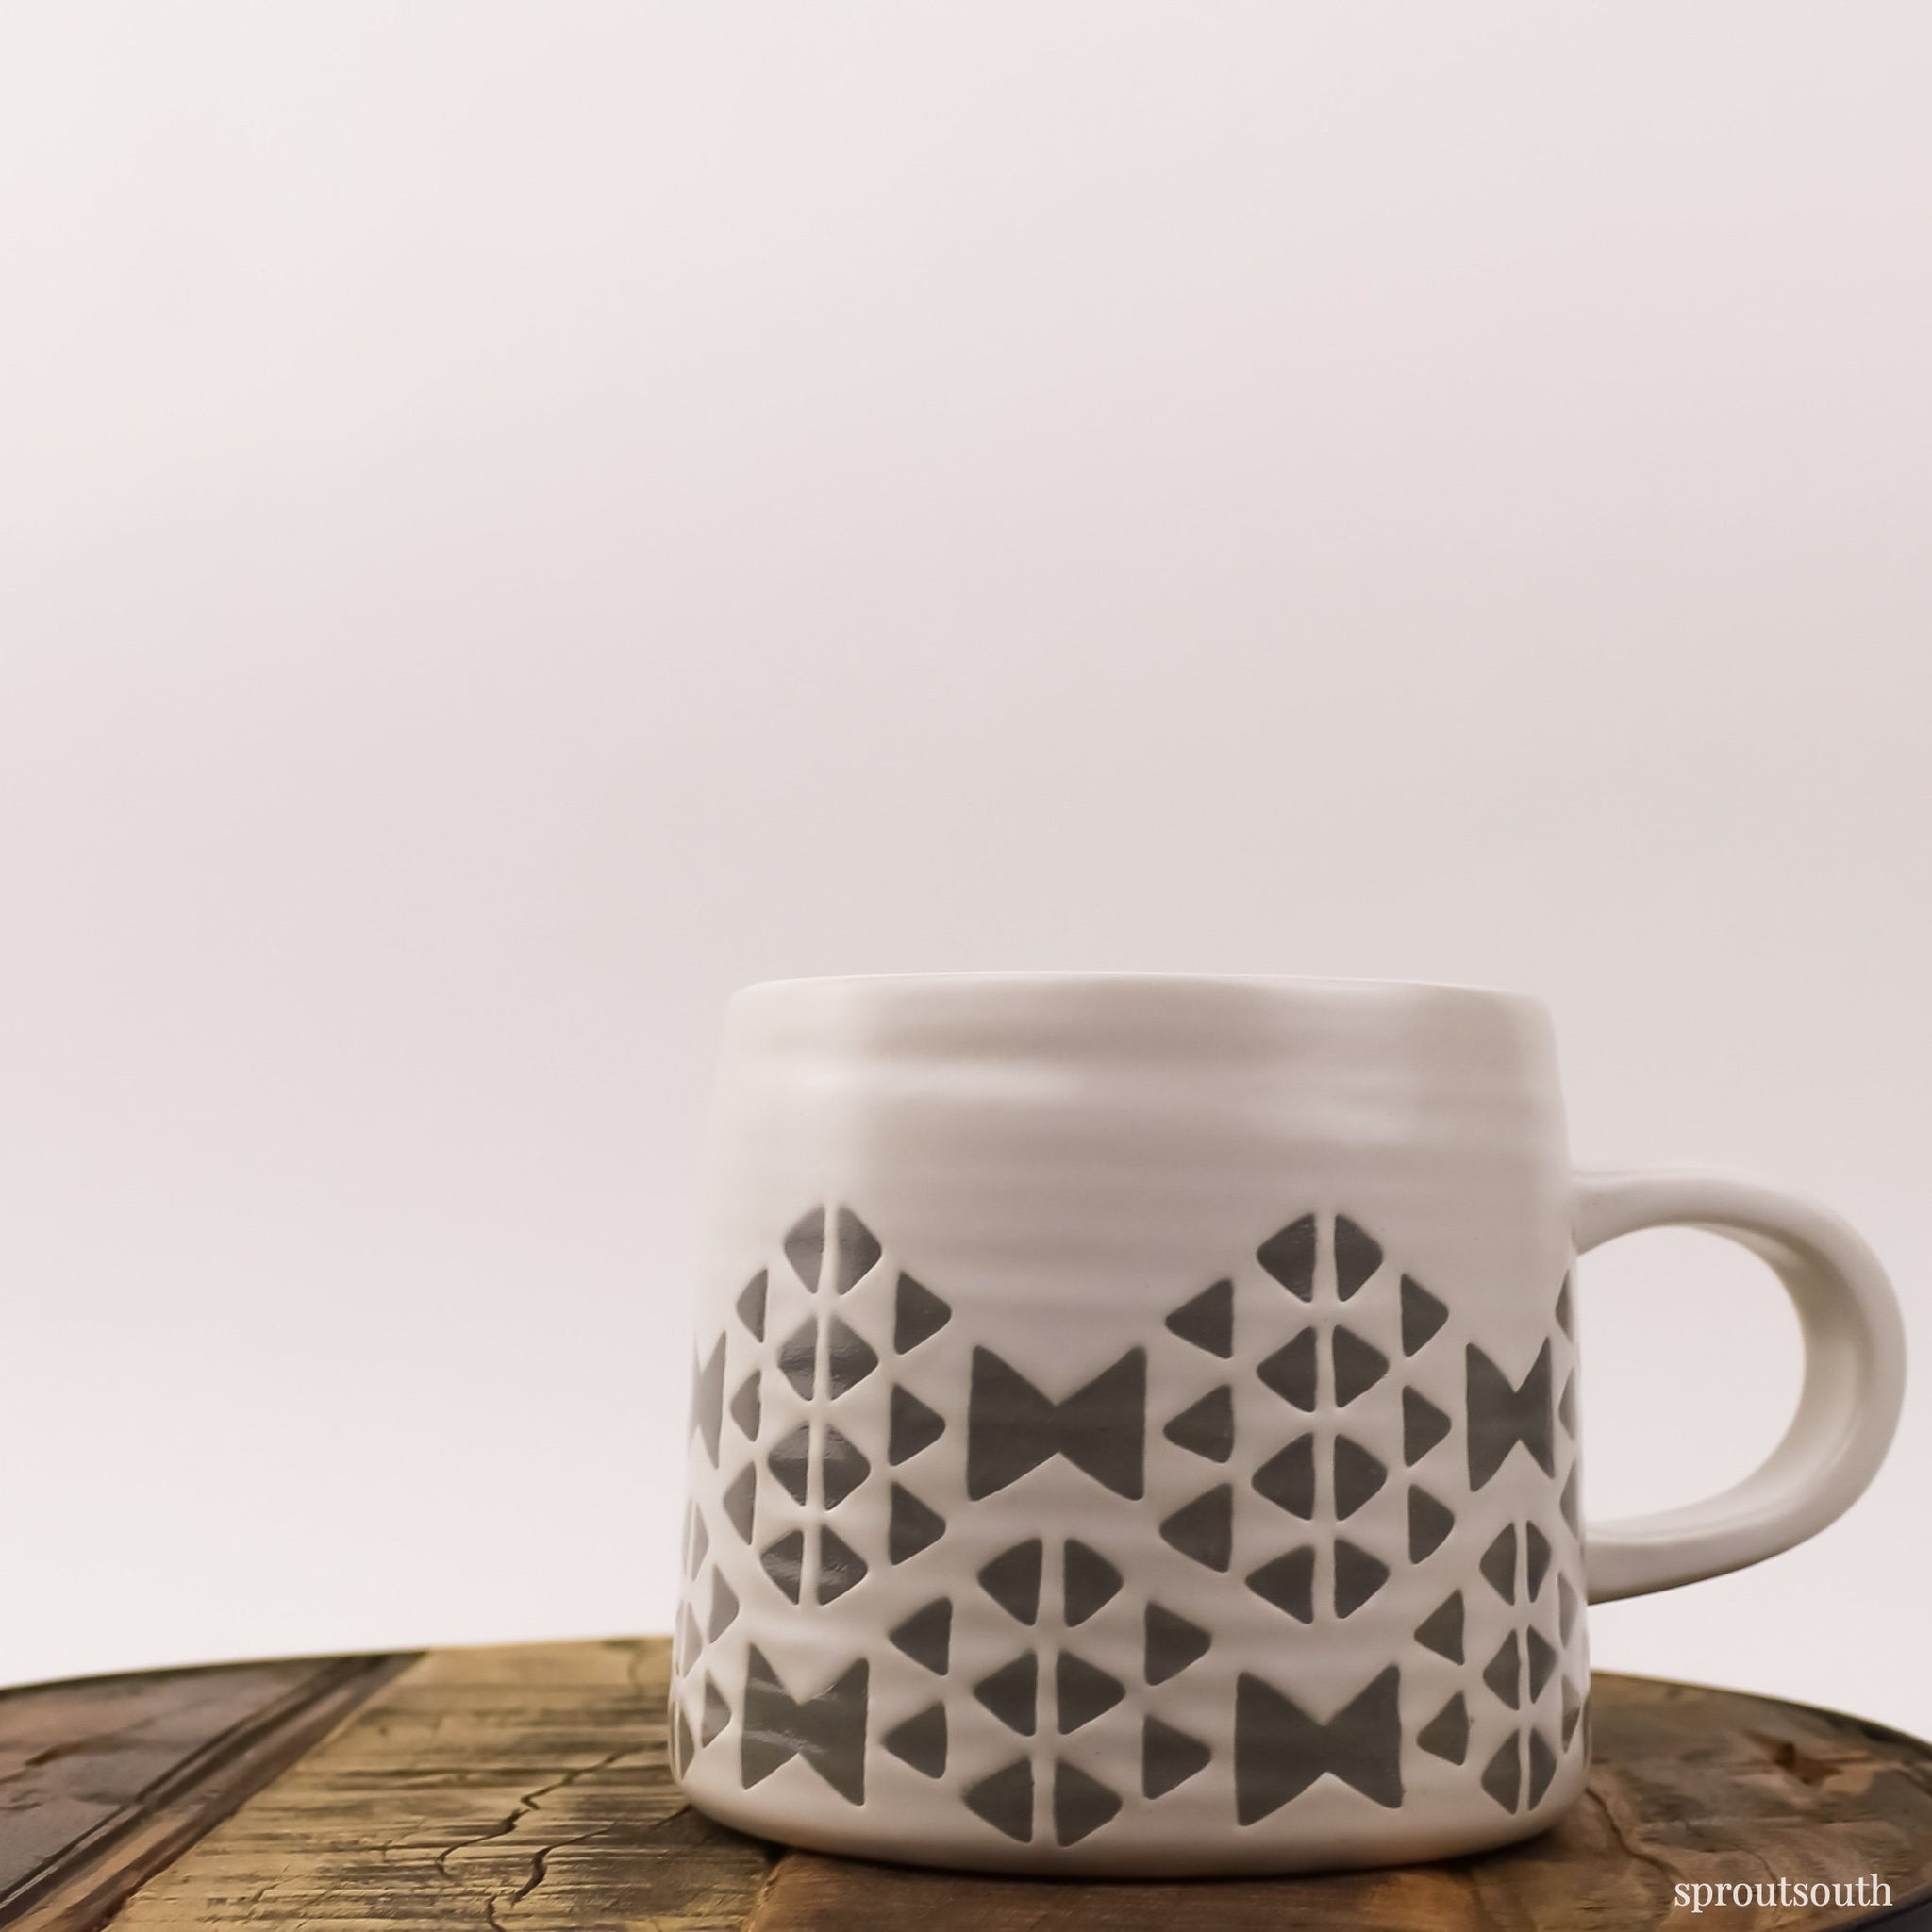 Tear Drop Mug Lifestyle Now Designs White & Grey Geometric